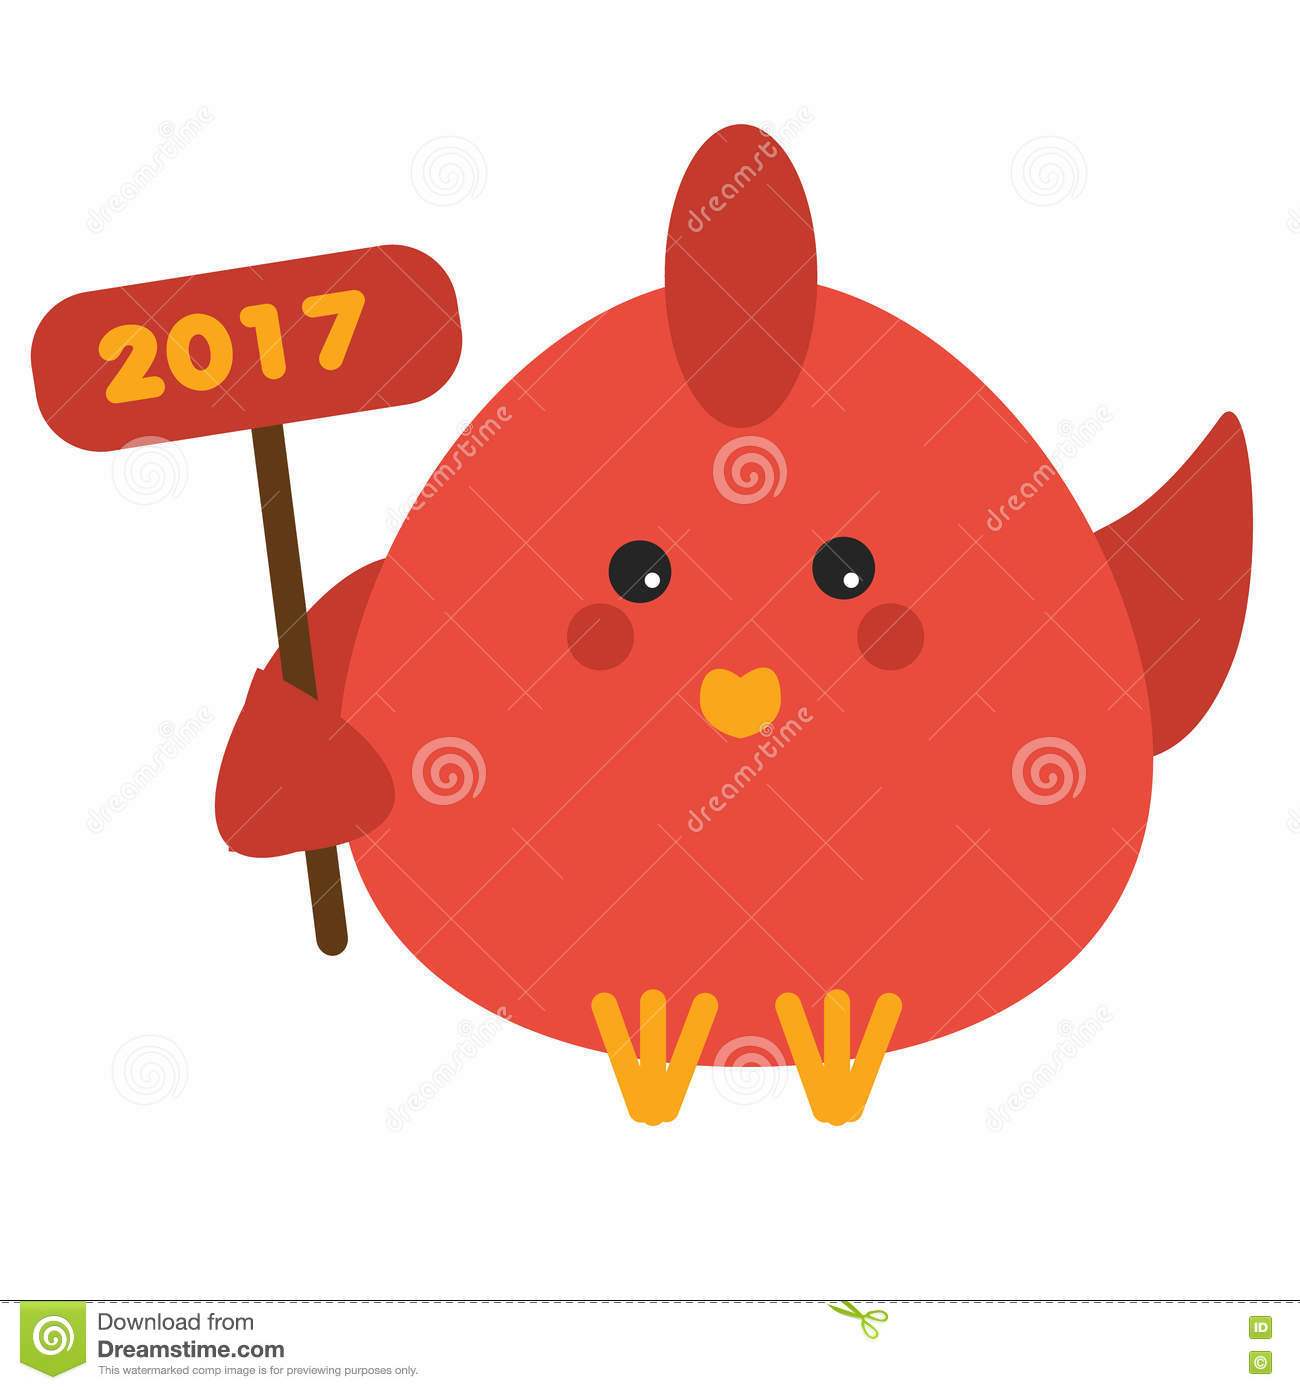 Cute Red Rooster In Cartoon Style  2017 New Year Symbol  Isolated     Download comp